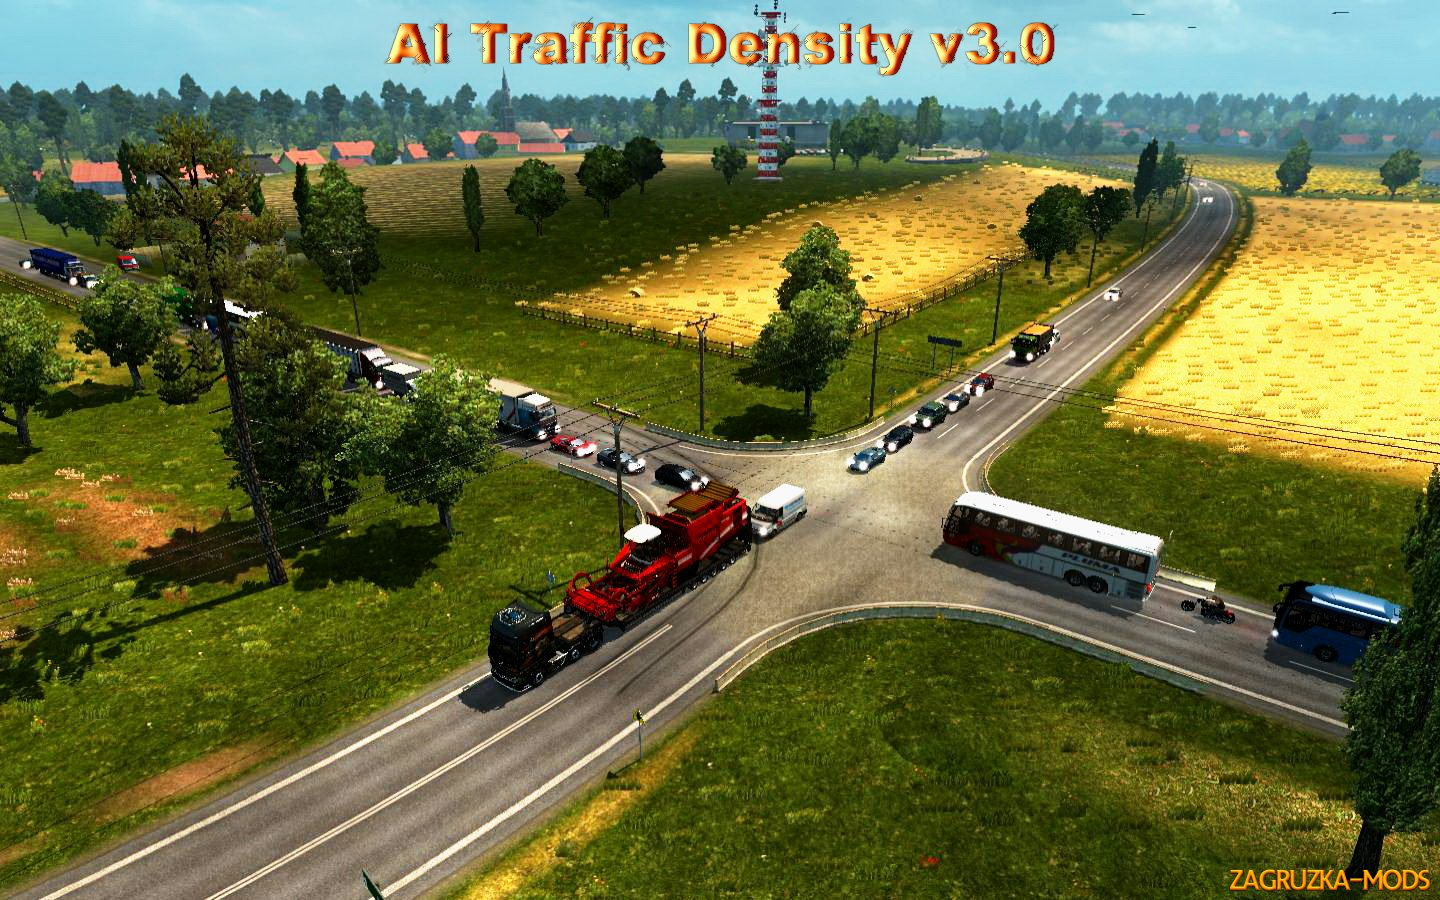 AI Traffic Density v3.0 for ETS 2